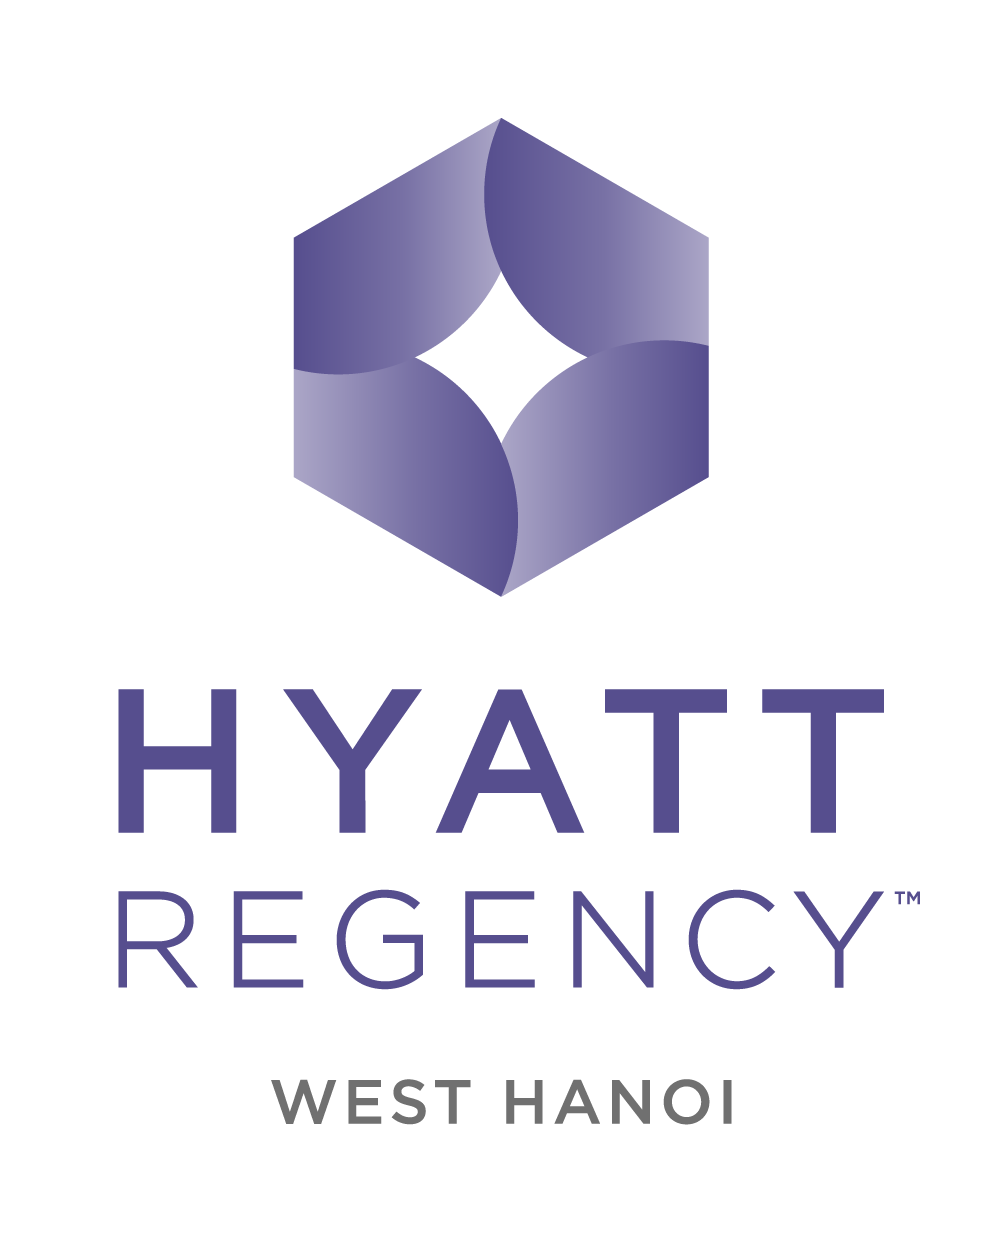 Hyatt Regency West Hanoi